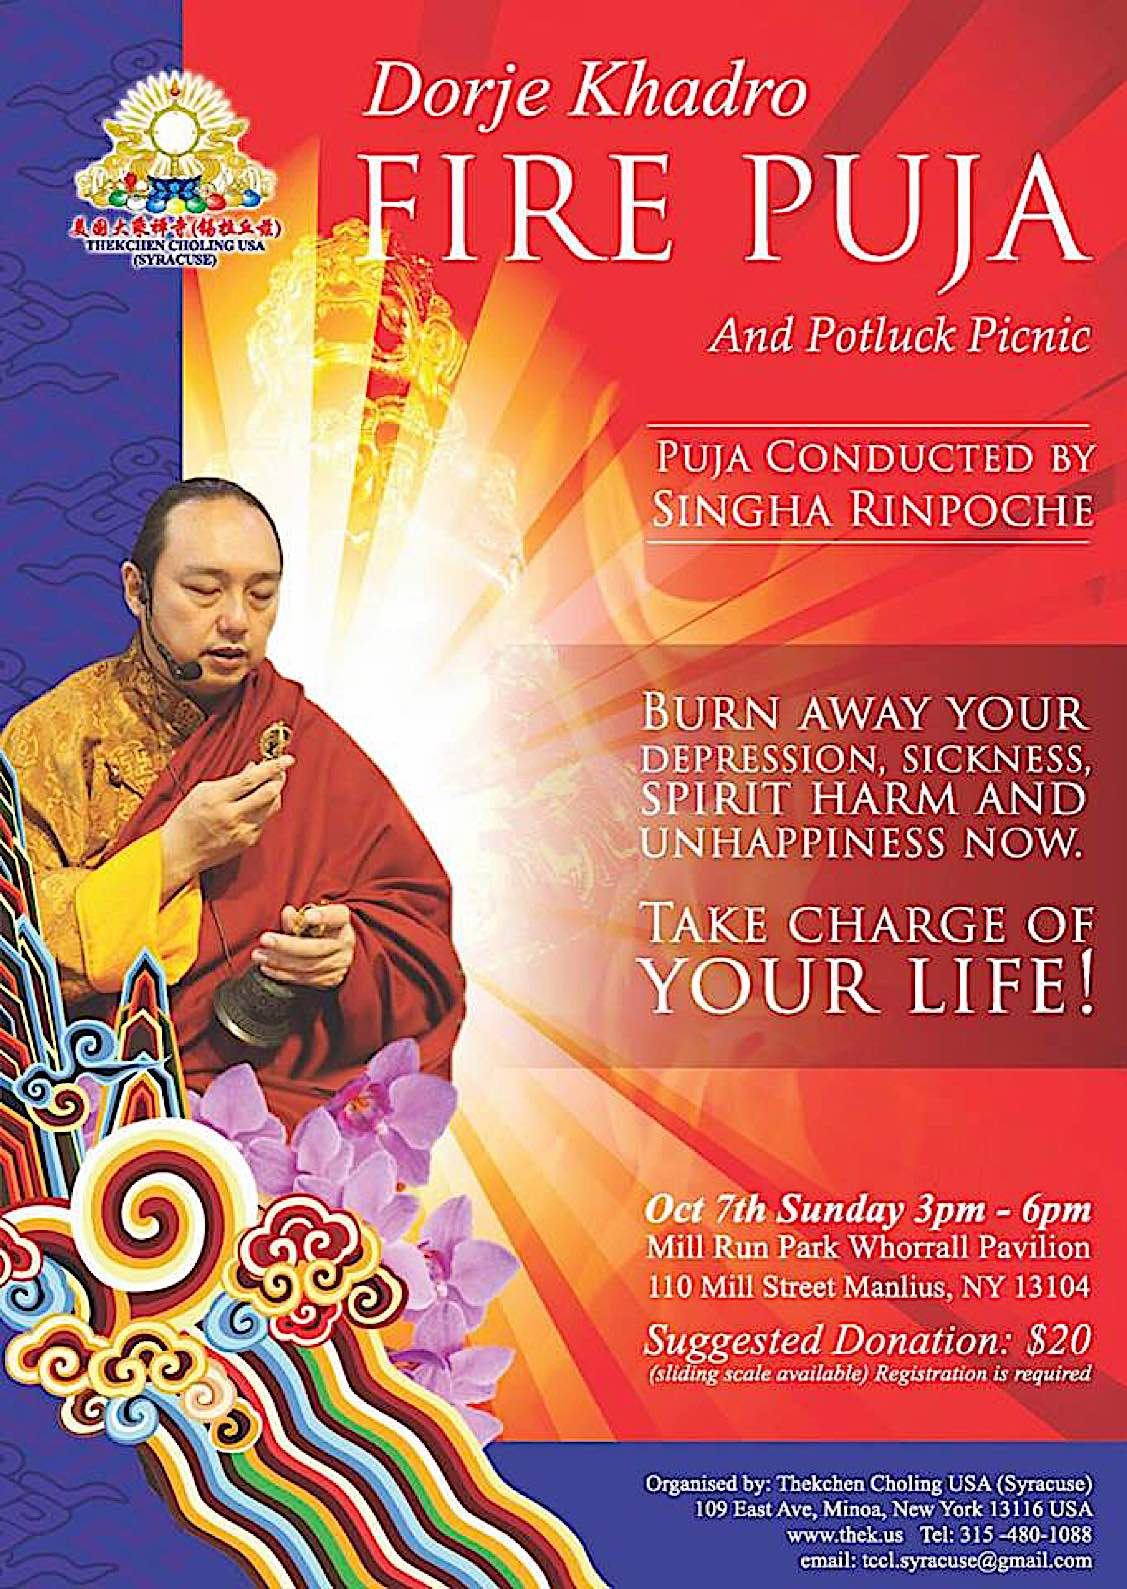 Buddha Weekly Dorje Khadro Fire Puja event with Singha Rinpoche Buddhism